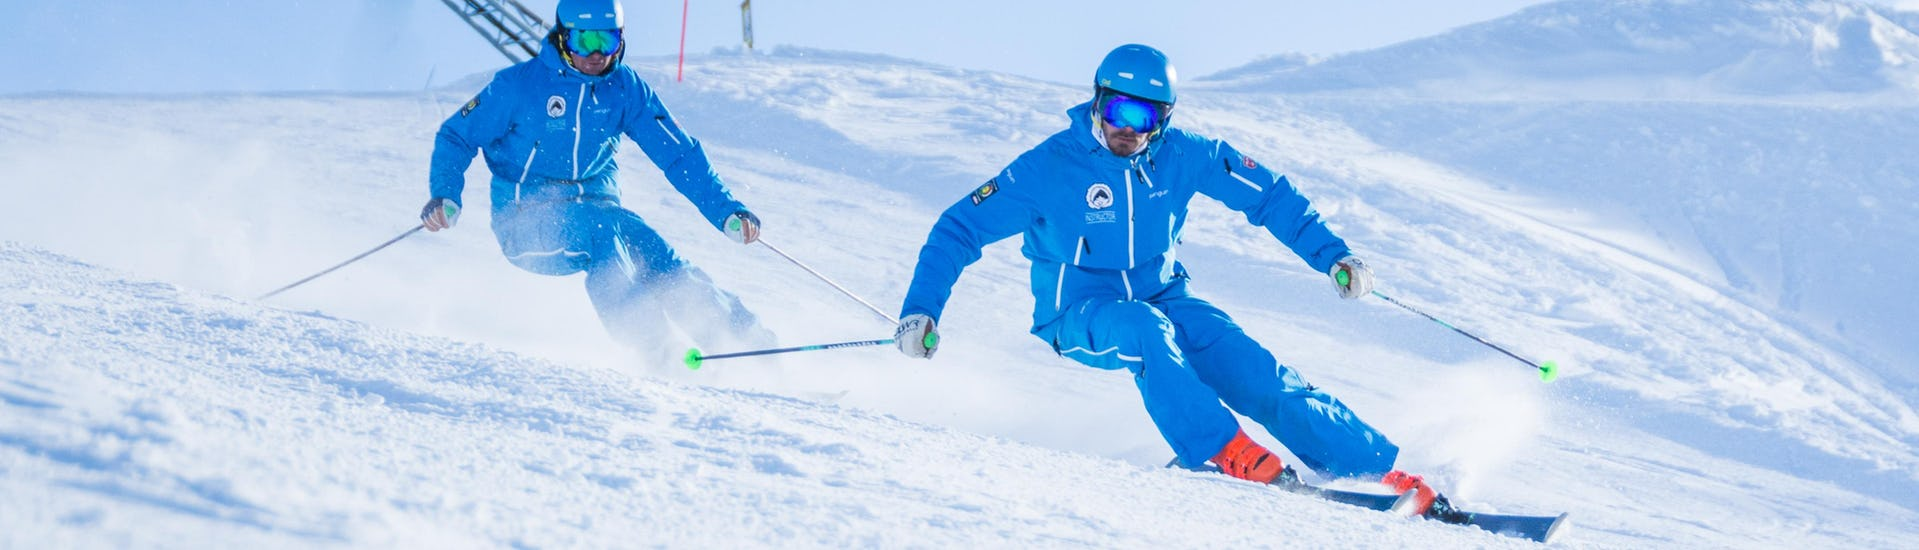 Ski Lessons for Adults - All Levels